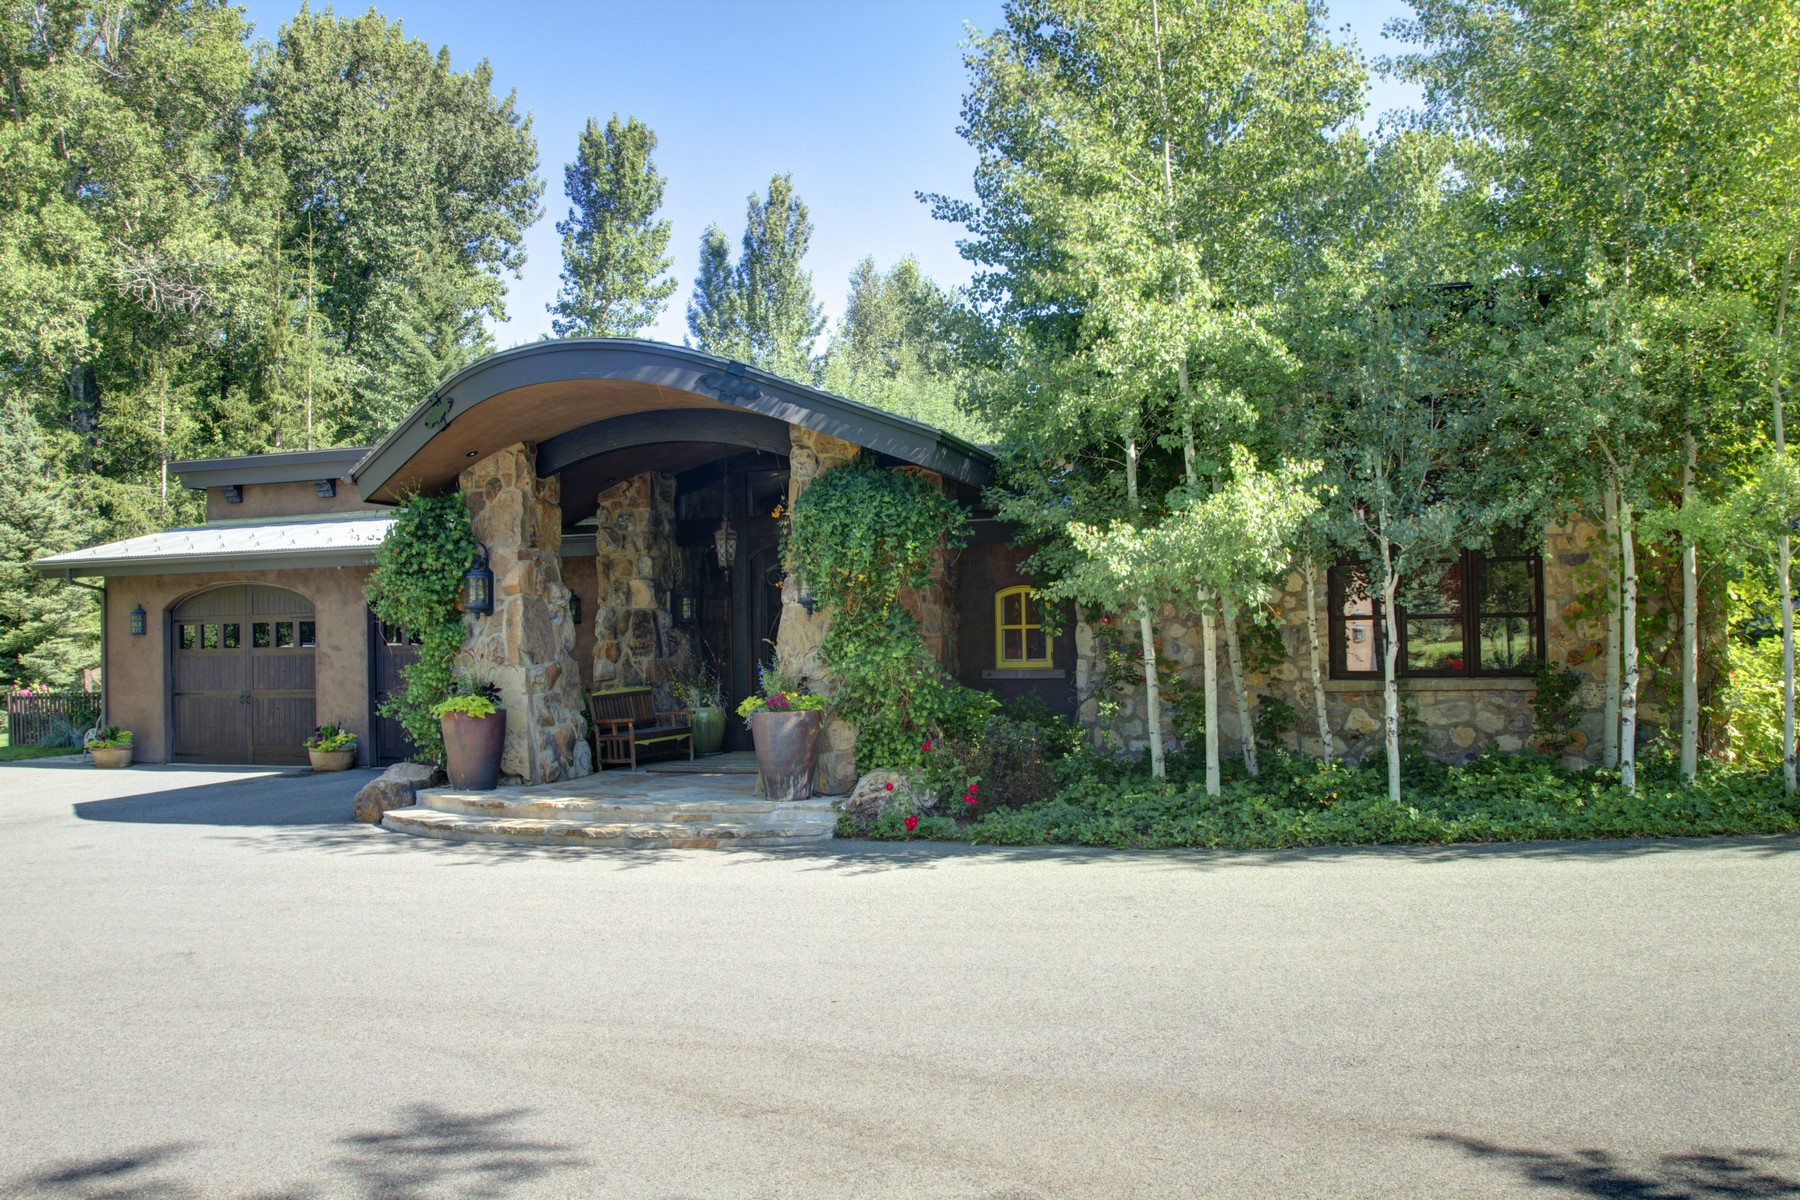 Additional photo for property listing at Old World Craftsmanship Meets Contemporary Mountain Living 102 Sutton Place Ketchum, Idaho 83340 Estados Unidos